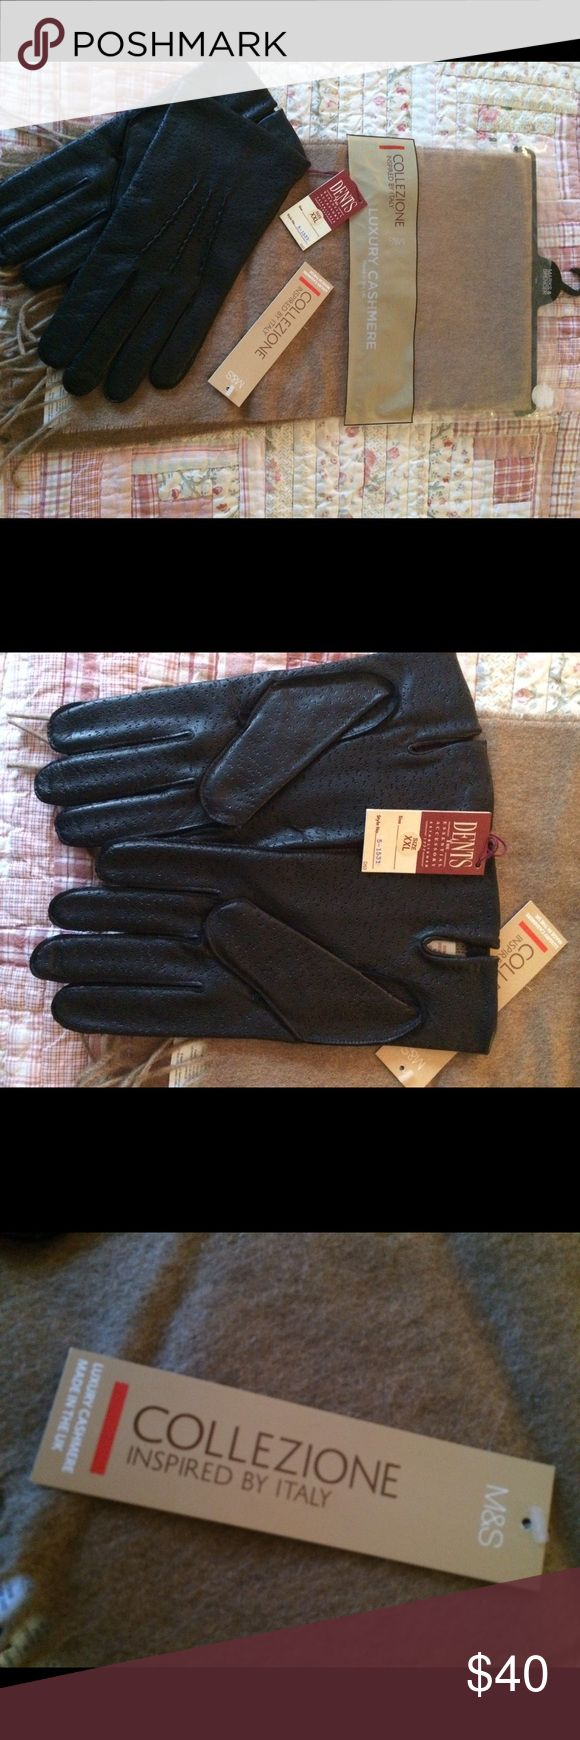 Men's cashmere scarf and leather gloves Brand new men's cashmere scarf and leather men's gloves size XXL Marks & Spencers & Dents Accessories Gloves